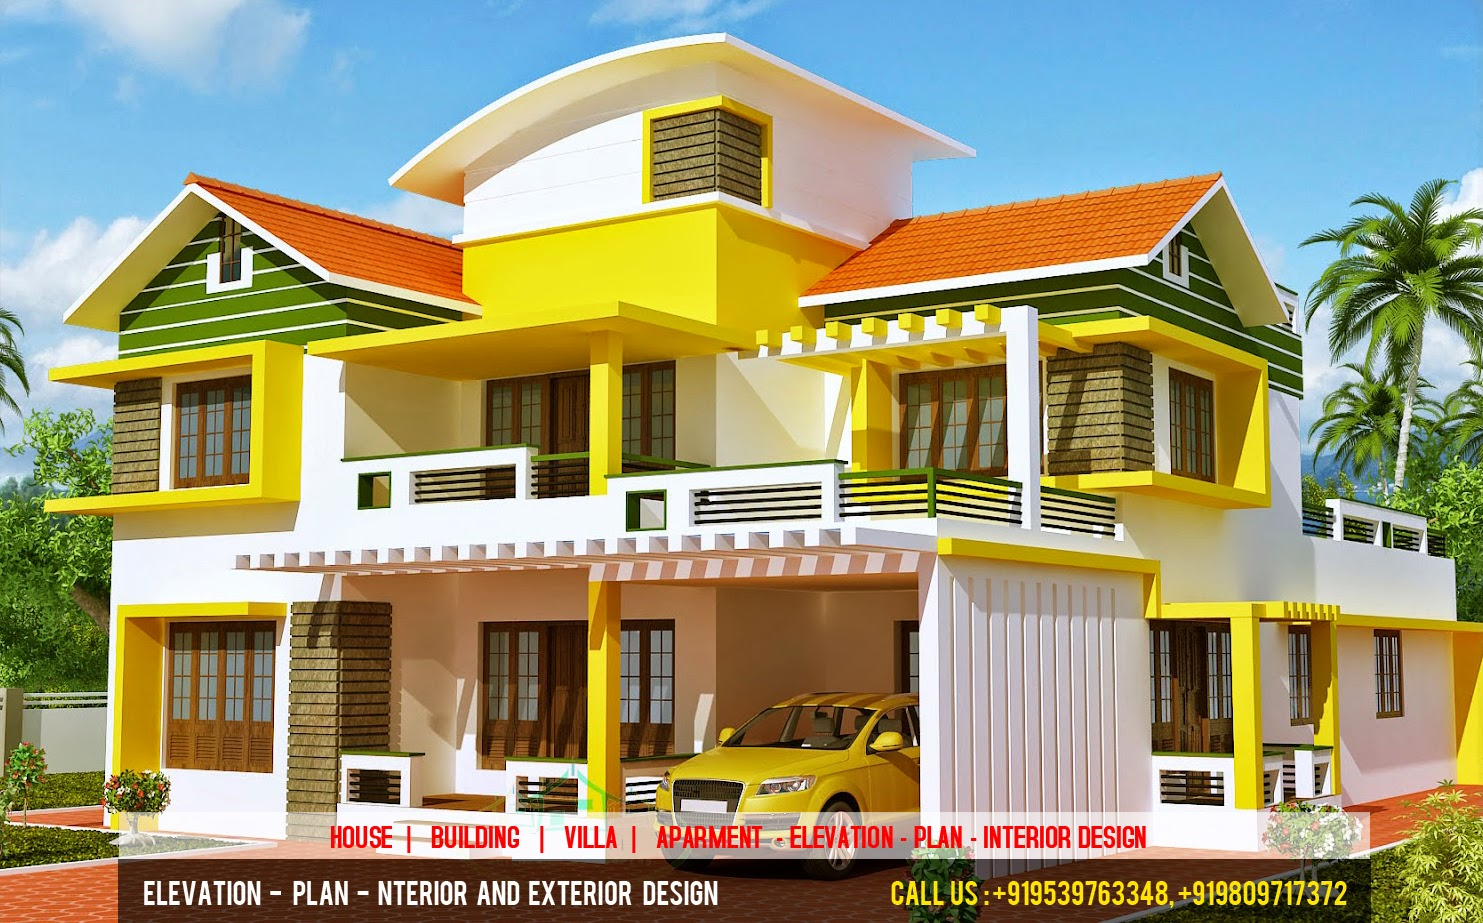 Best Villa Design Of 3d Elevation Plan Designer Best 3d Elevation Plan